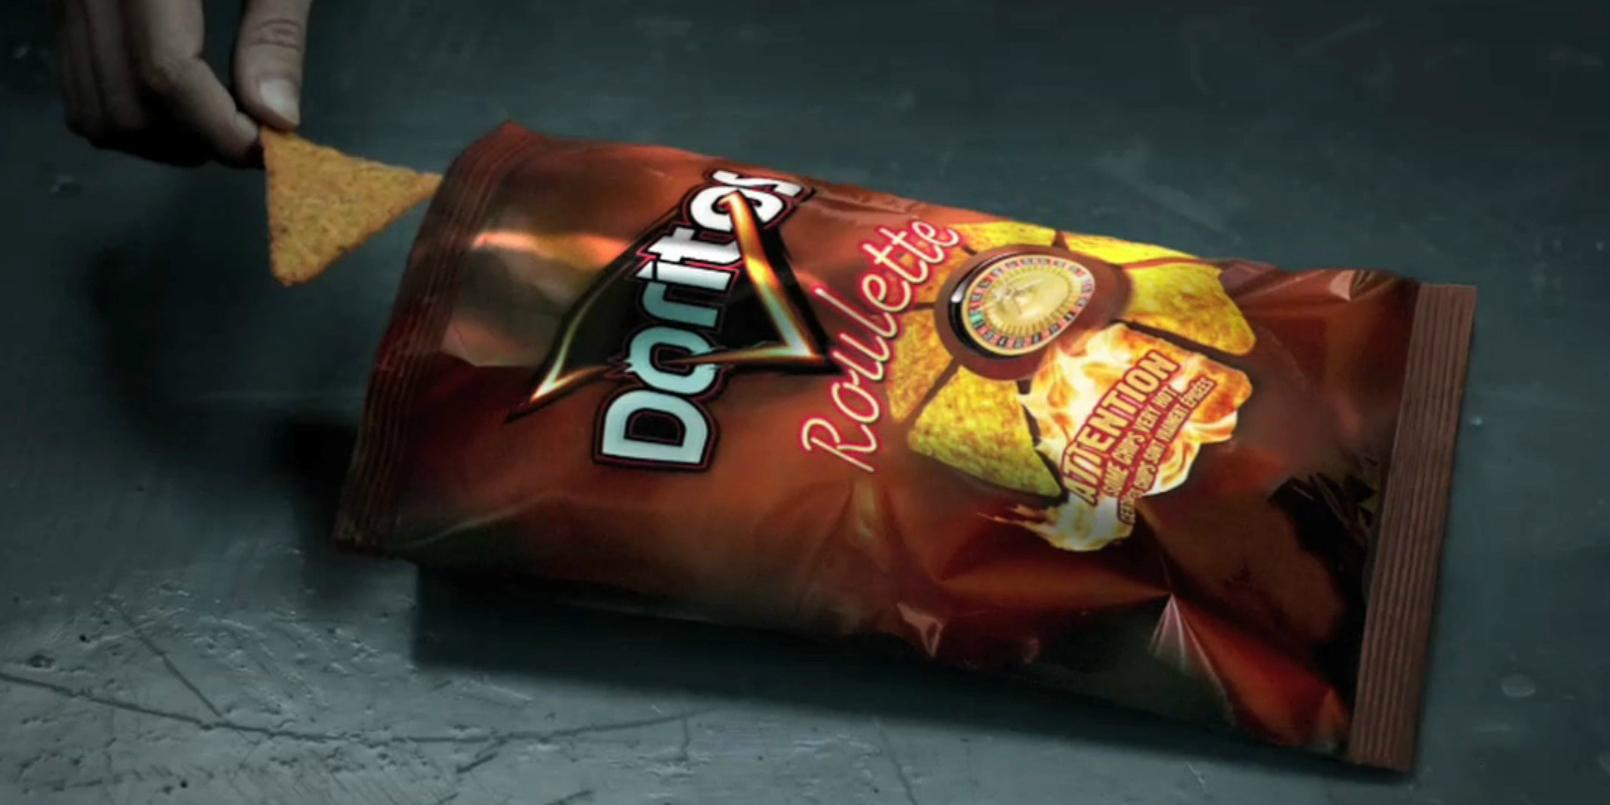 Some Doritos in this bag could melt your face http://t.co/9ju5THEJqO http://t.co/KF1GXW2QGY